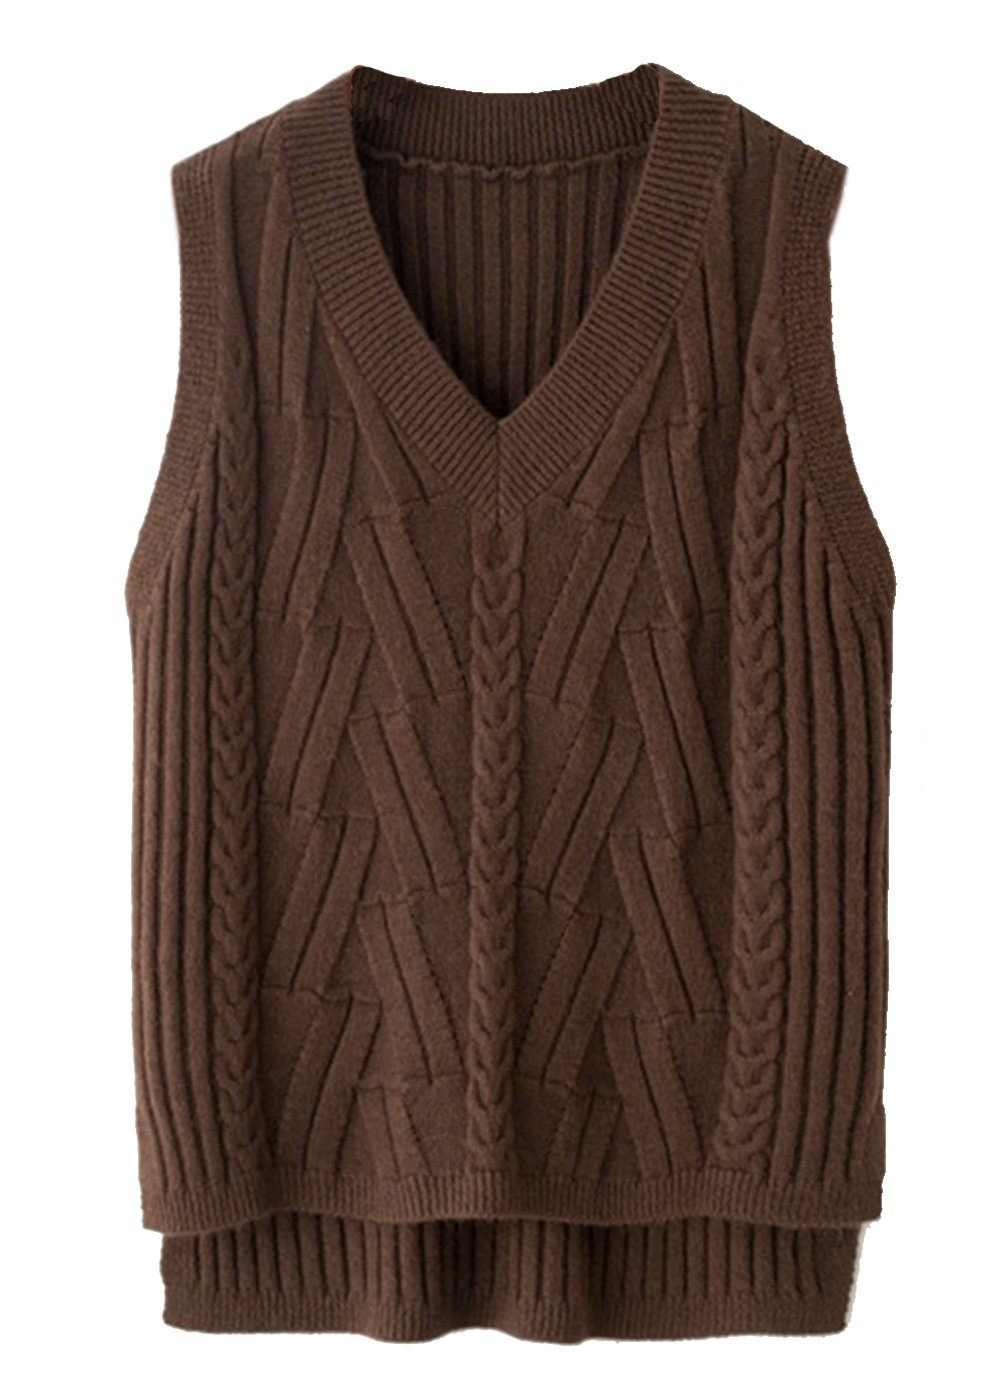 Hotmiss Women's Solid Color V Neck Sleeveless Pullover Knit Sweater Vest Tops One Size)